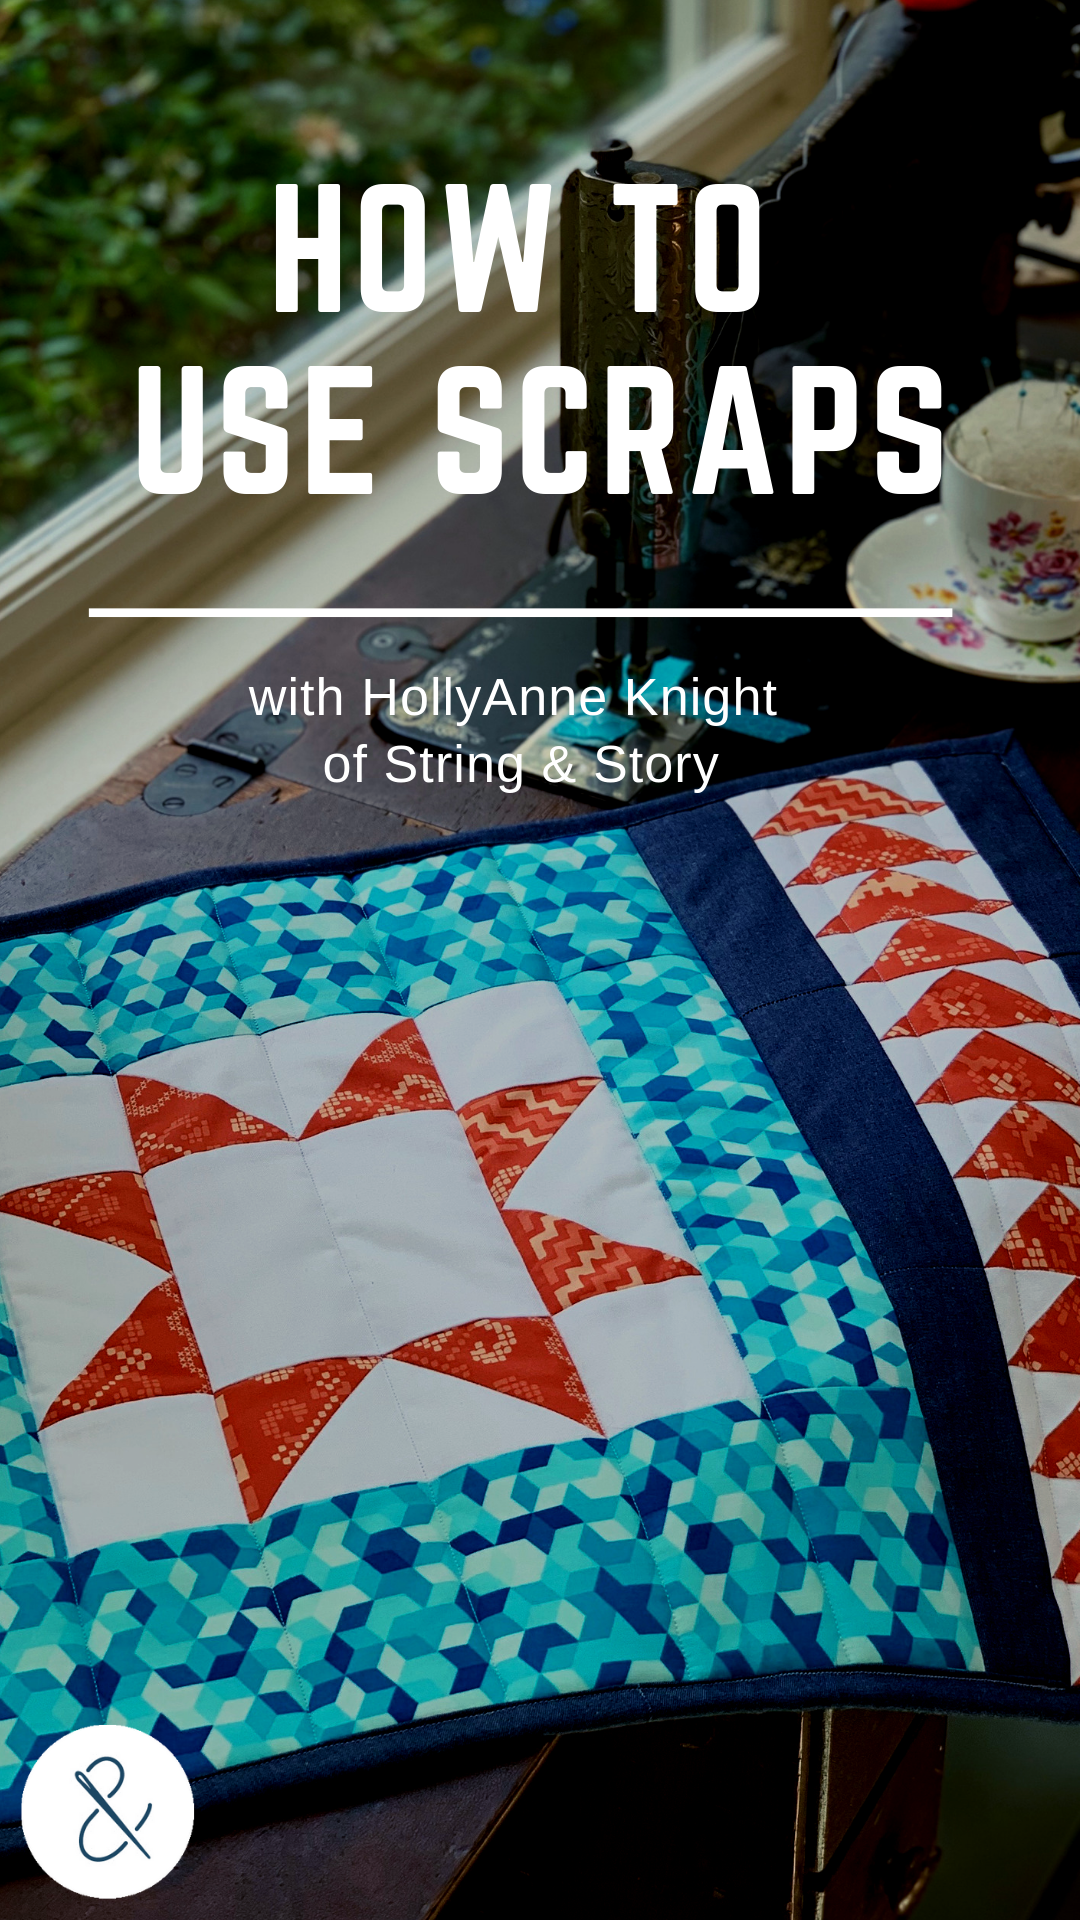 Most quilters love to save their scraps, even just stuffed in bins or totes, but it can be a challenge to know how to regularly and effectively use them. Let's take a look at several ways that you can make using scraps part of your regular quilty fun.